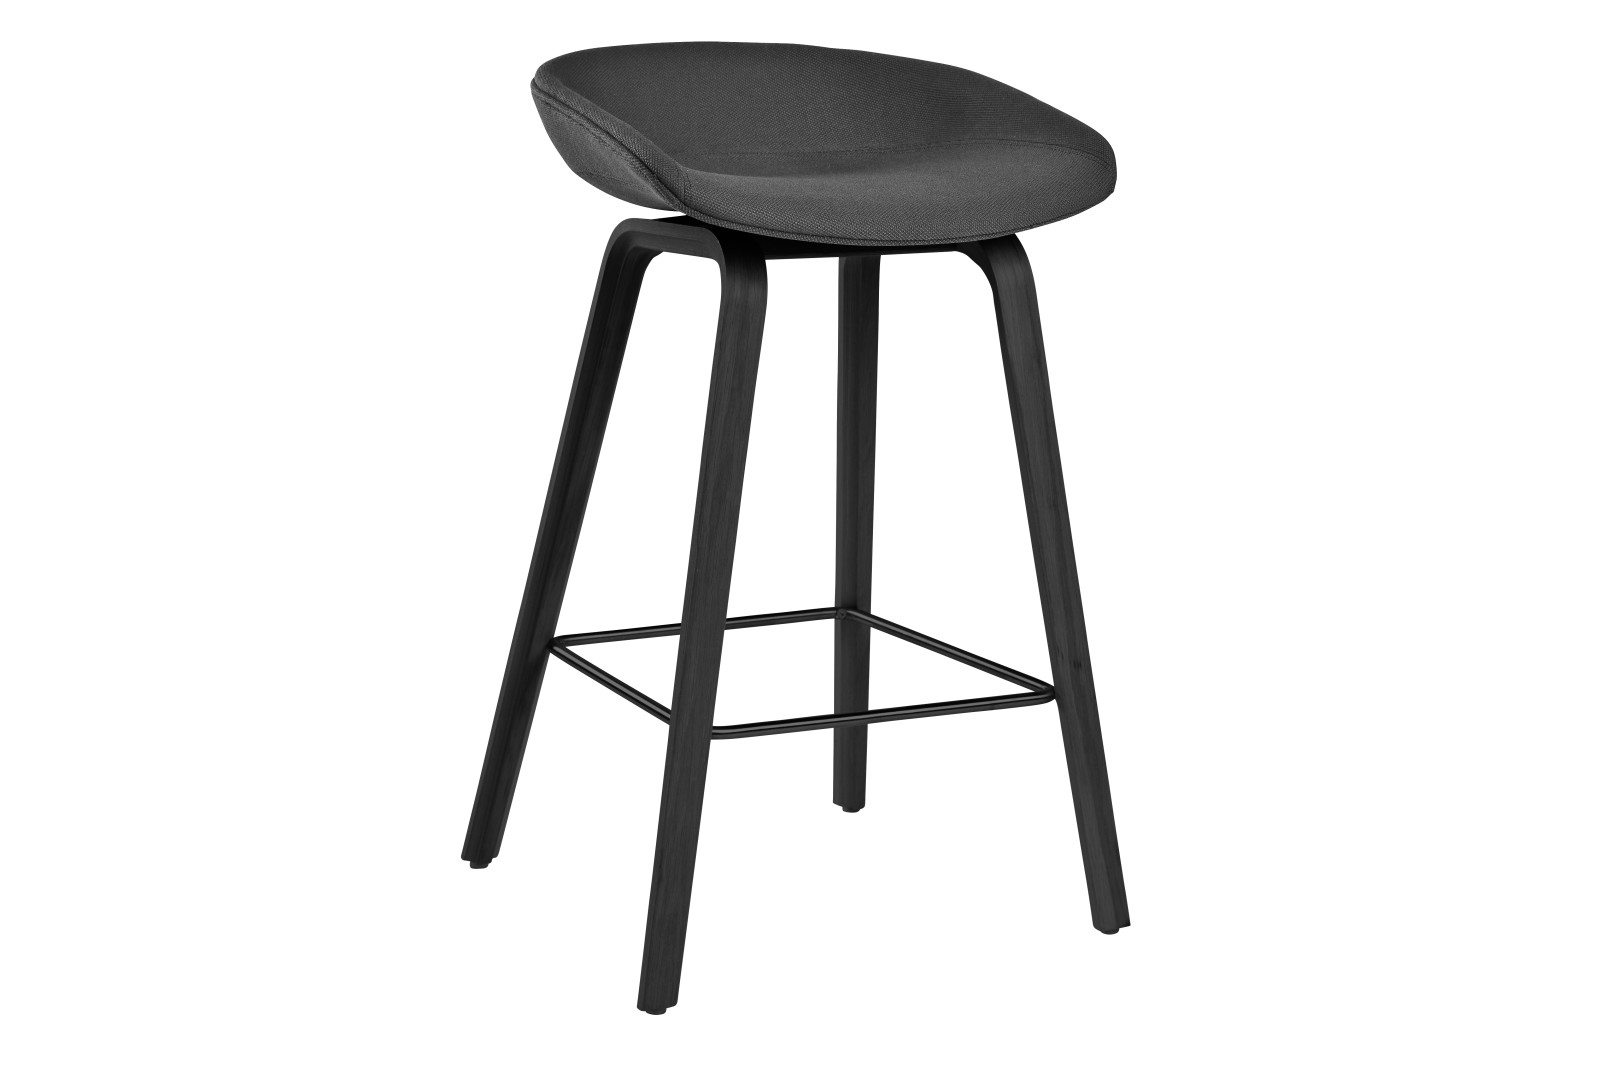 About A Stool AAS33 Low Stool, Black Stained Legs Steelcut 2 110